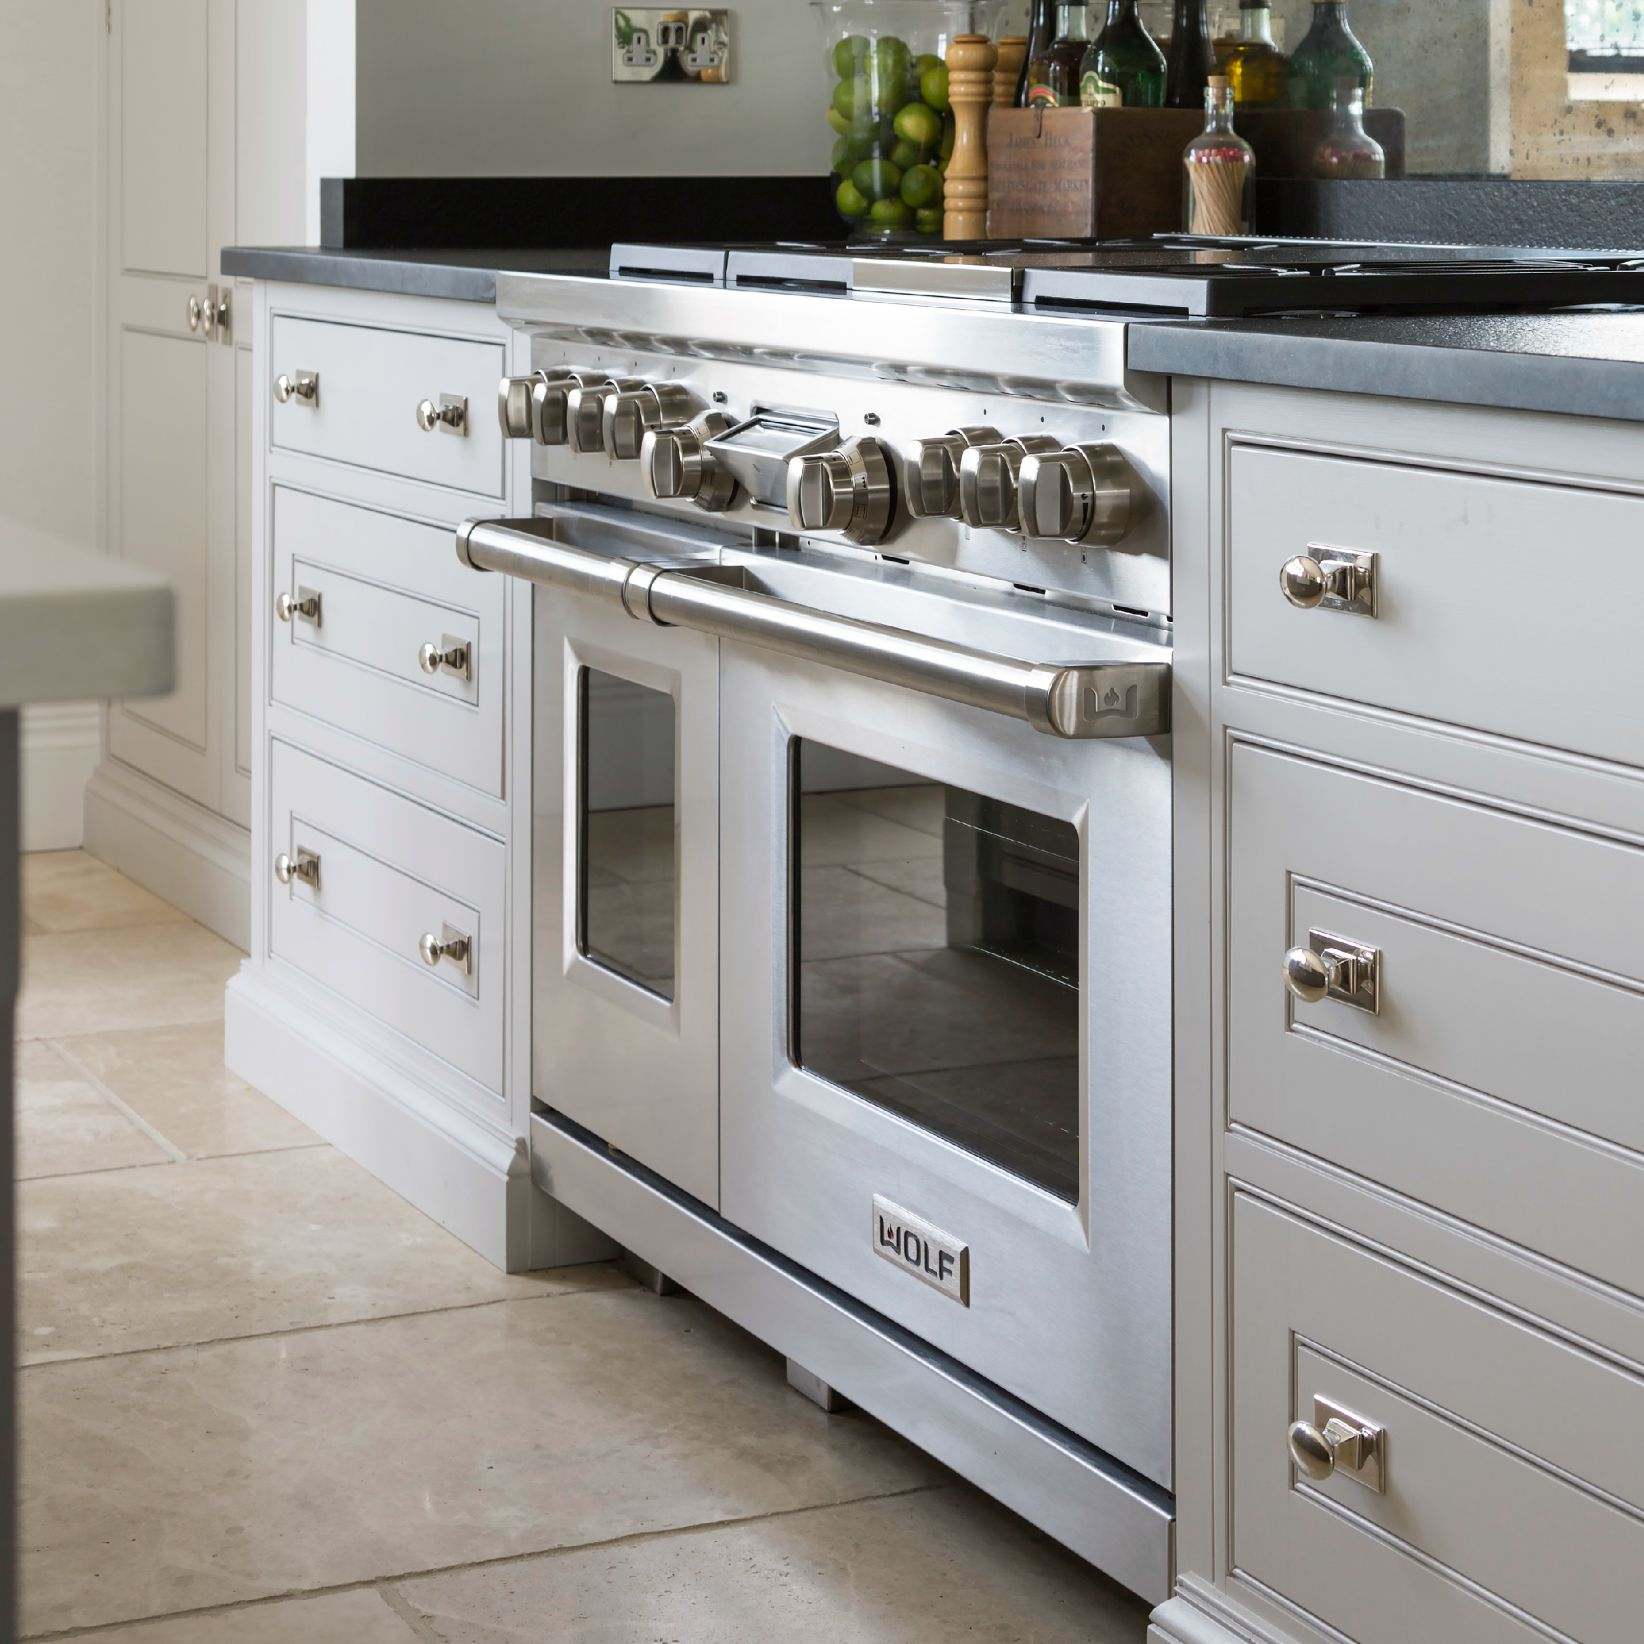 Wolf Range Cooker | The Grange Project